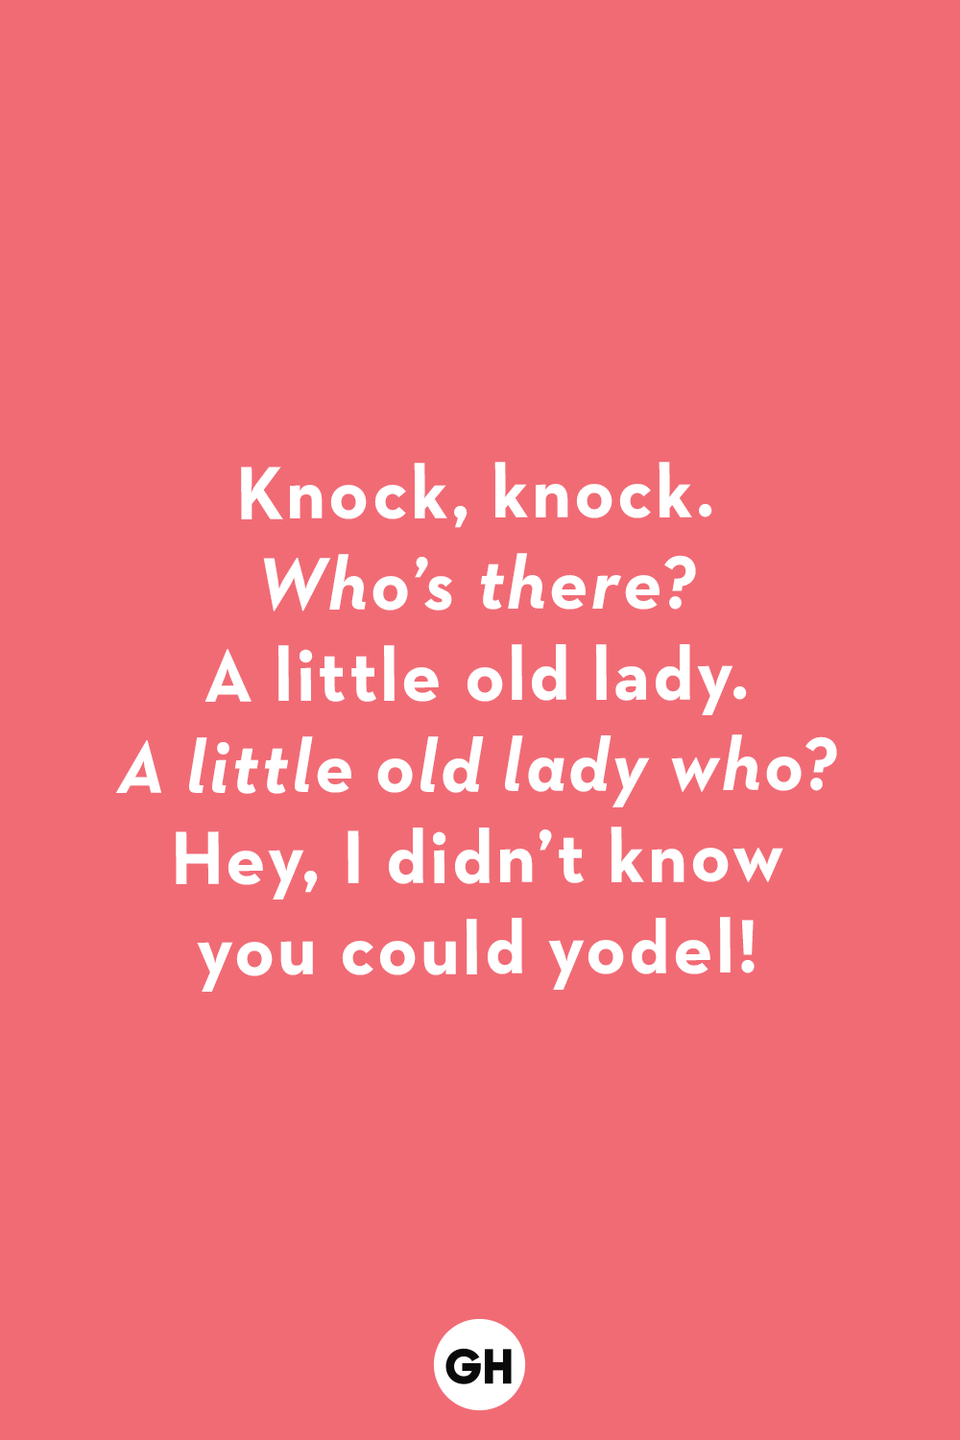 <p><em>Who's there?</em></p><p>A little old lady.</p><p><em>A little old lady who? </em></p><p>Hey, I didn't know you could yodel!</p>